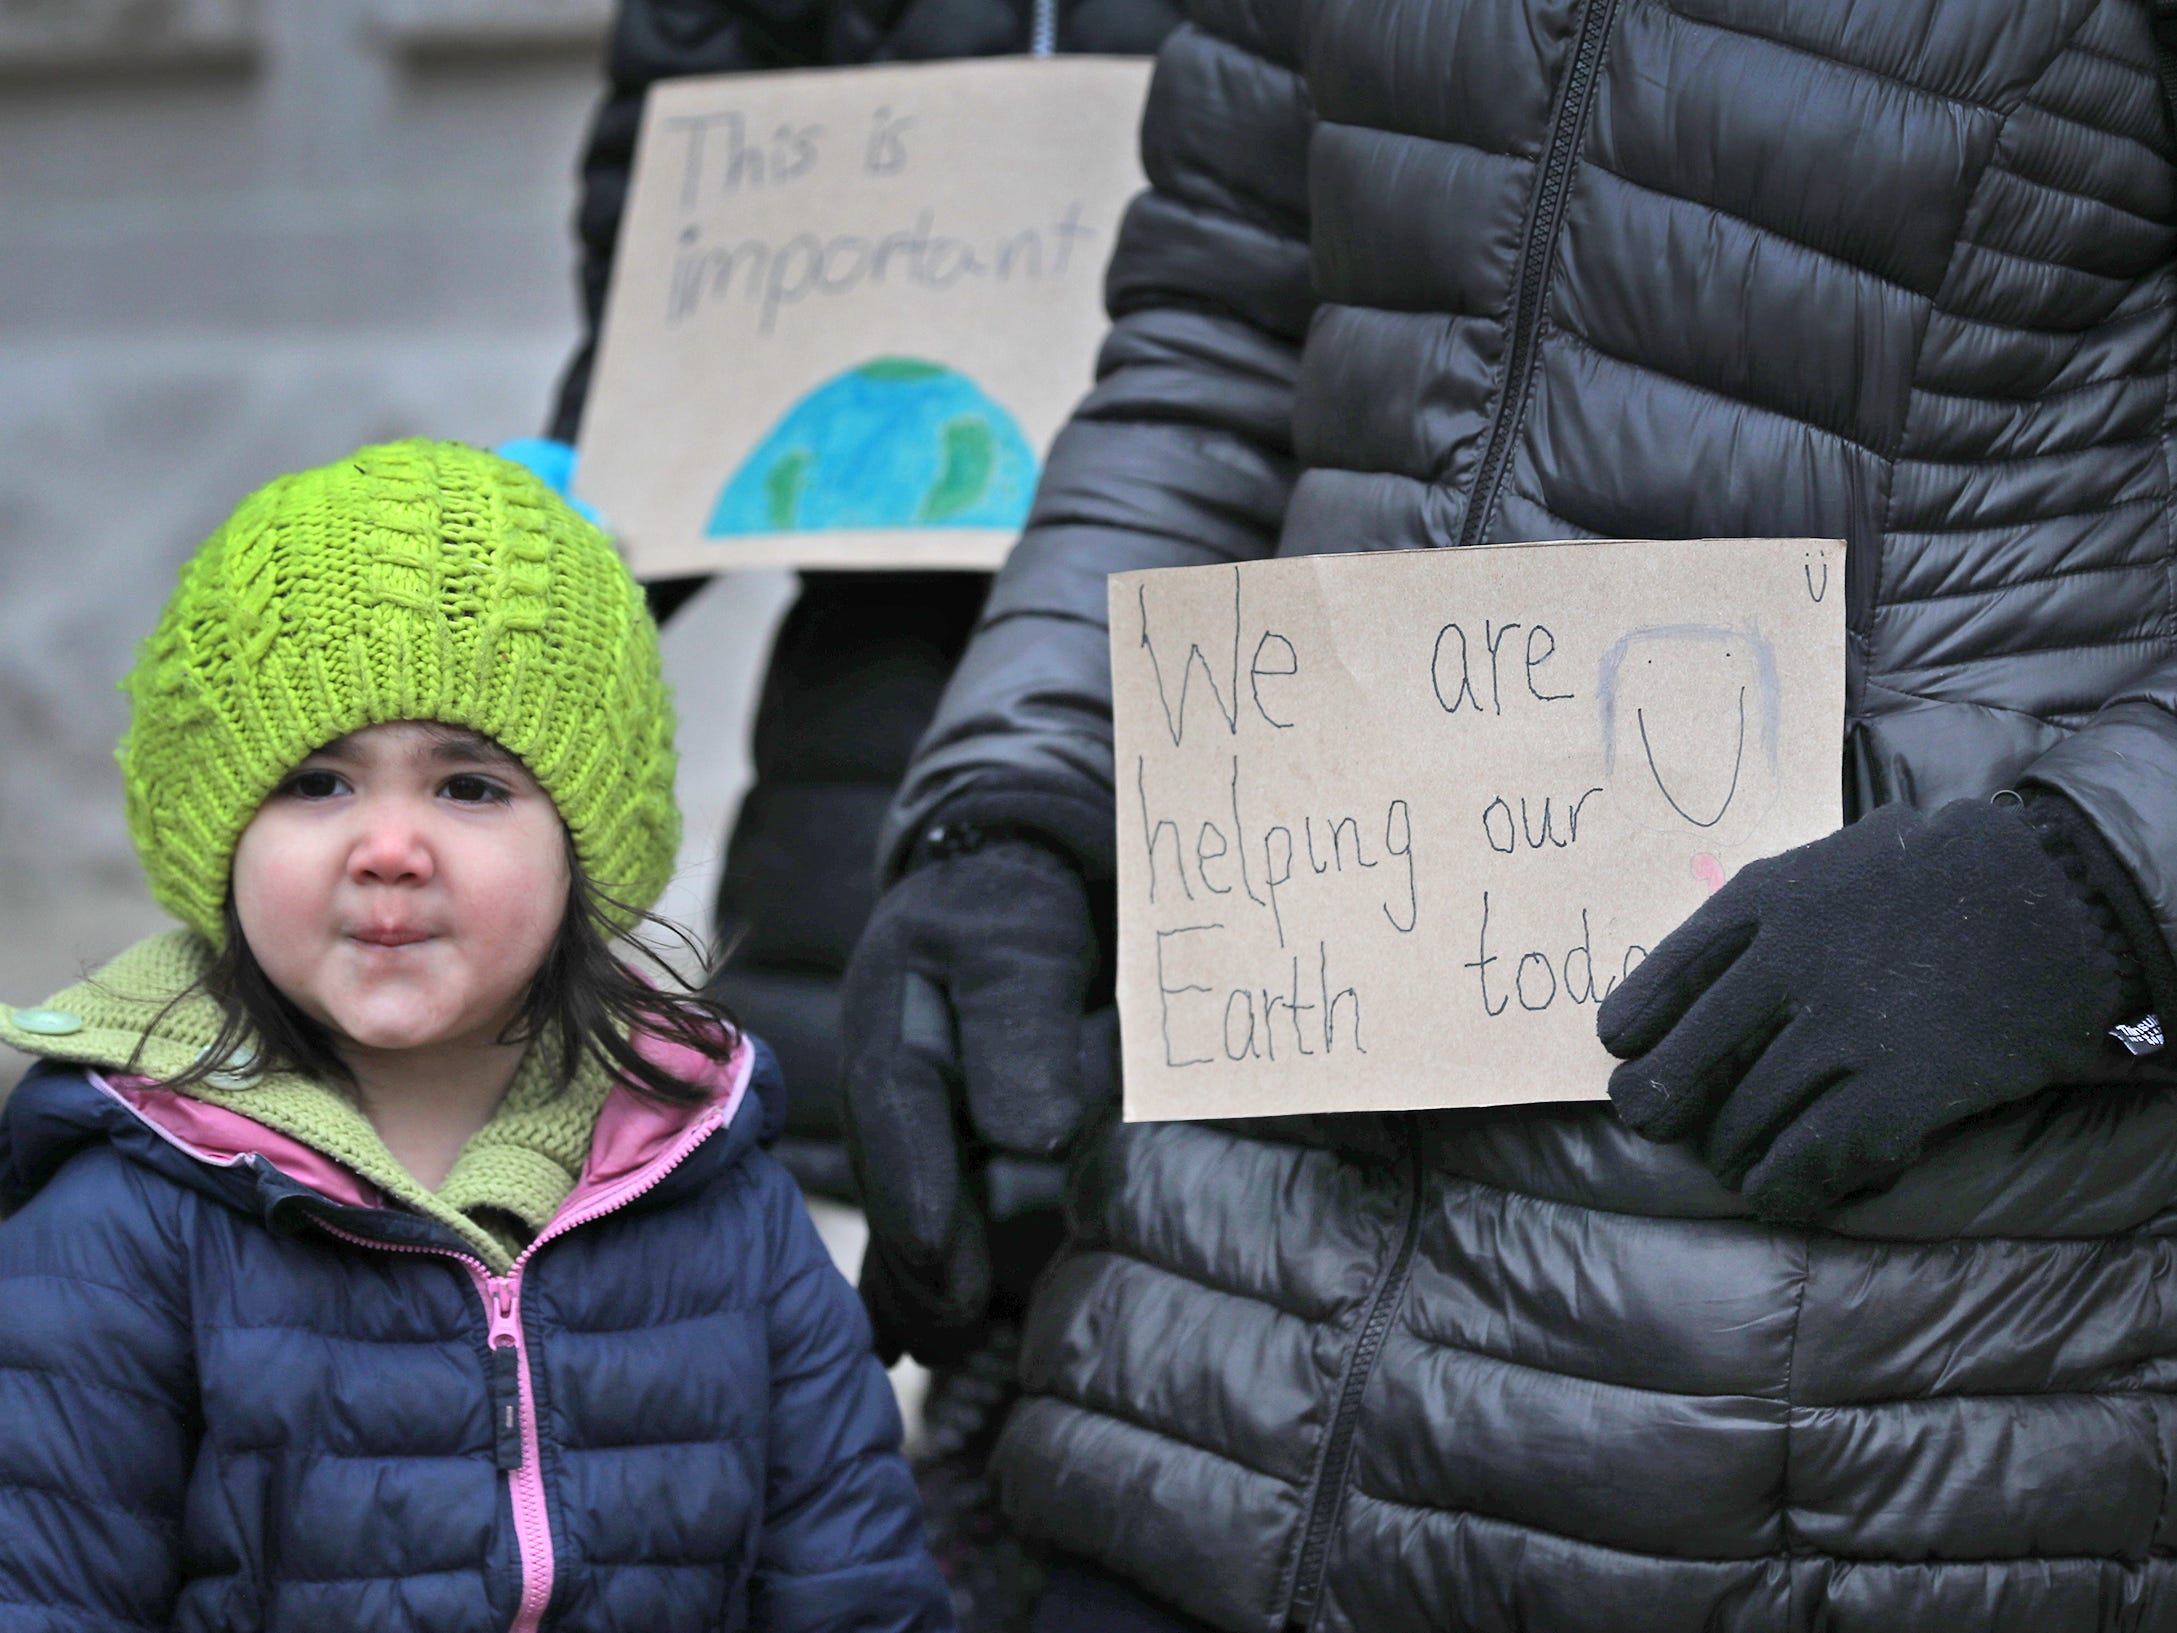 Aya Mulholland stands with her sister and mother during the Indiana part of the international Climate Strike, Friday, March 15, 2019, held outside the Indiana Statehouse.  Following in the footsteps of 16-year-old Swedish trailblazer, Greta Thunberg, students around the world are skipping school to protest government inaction on climate change.